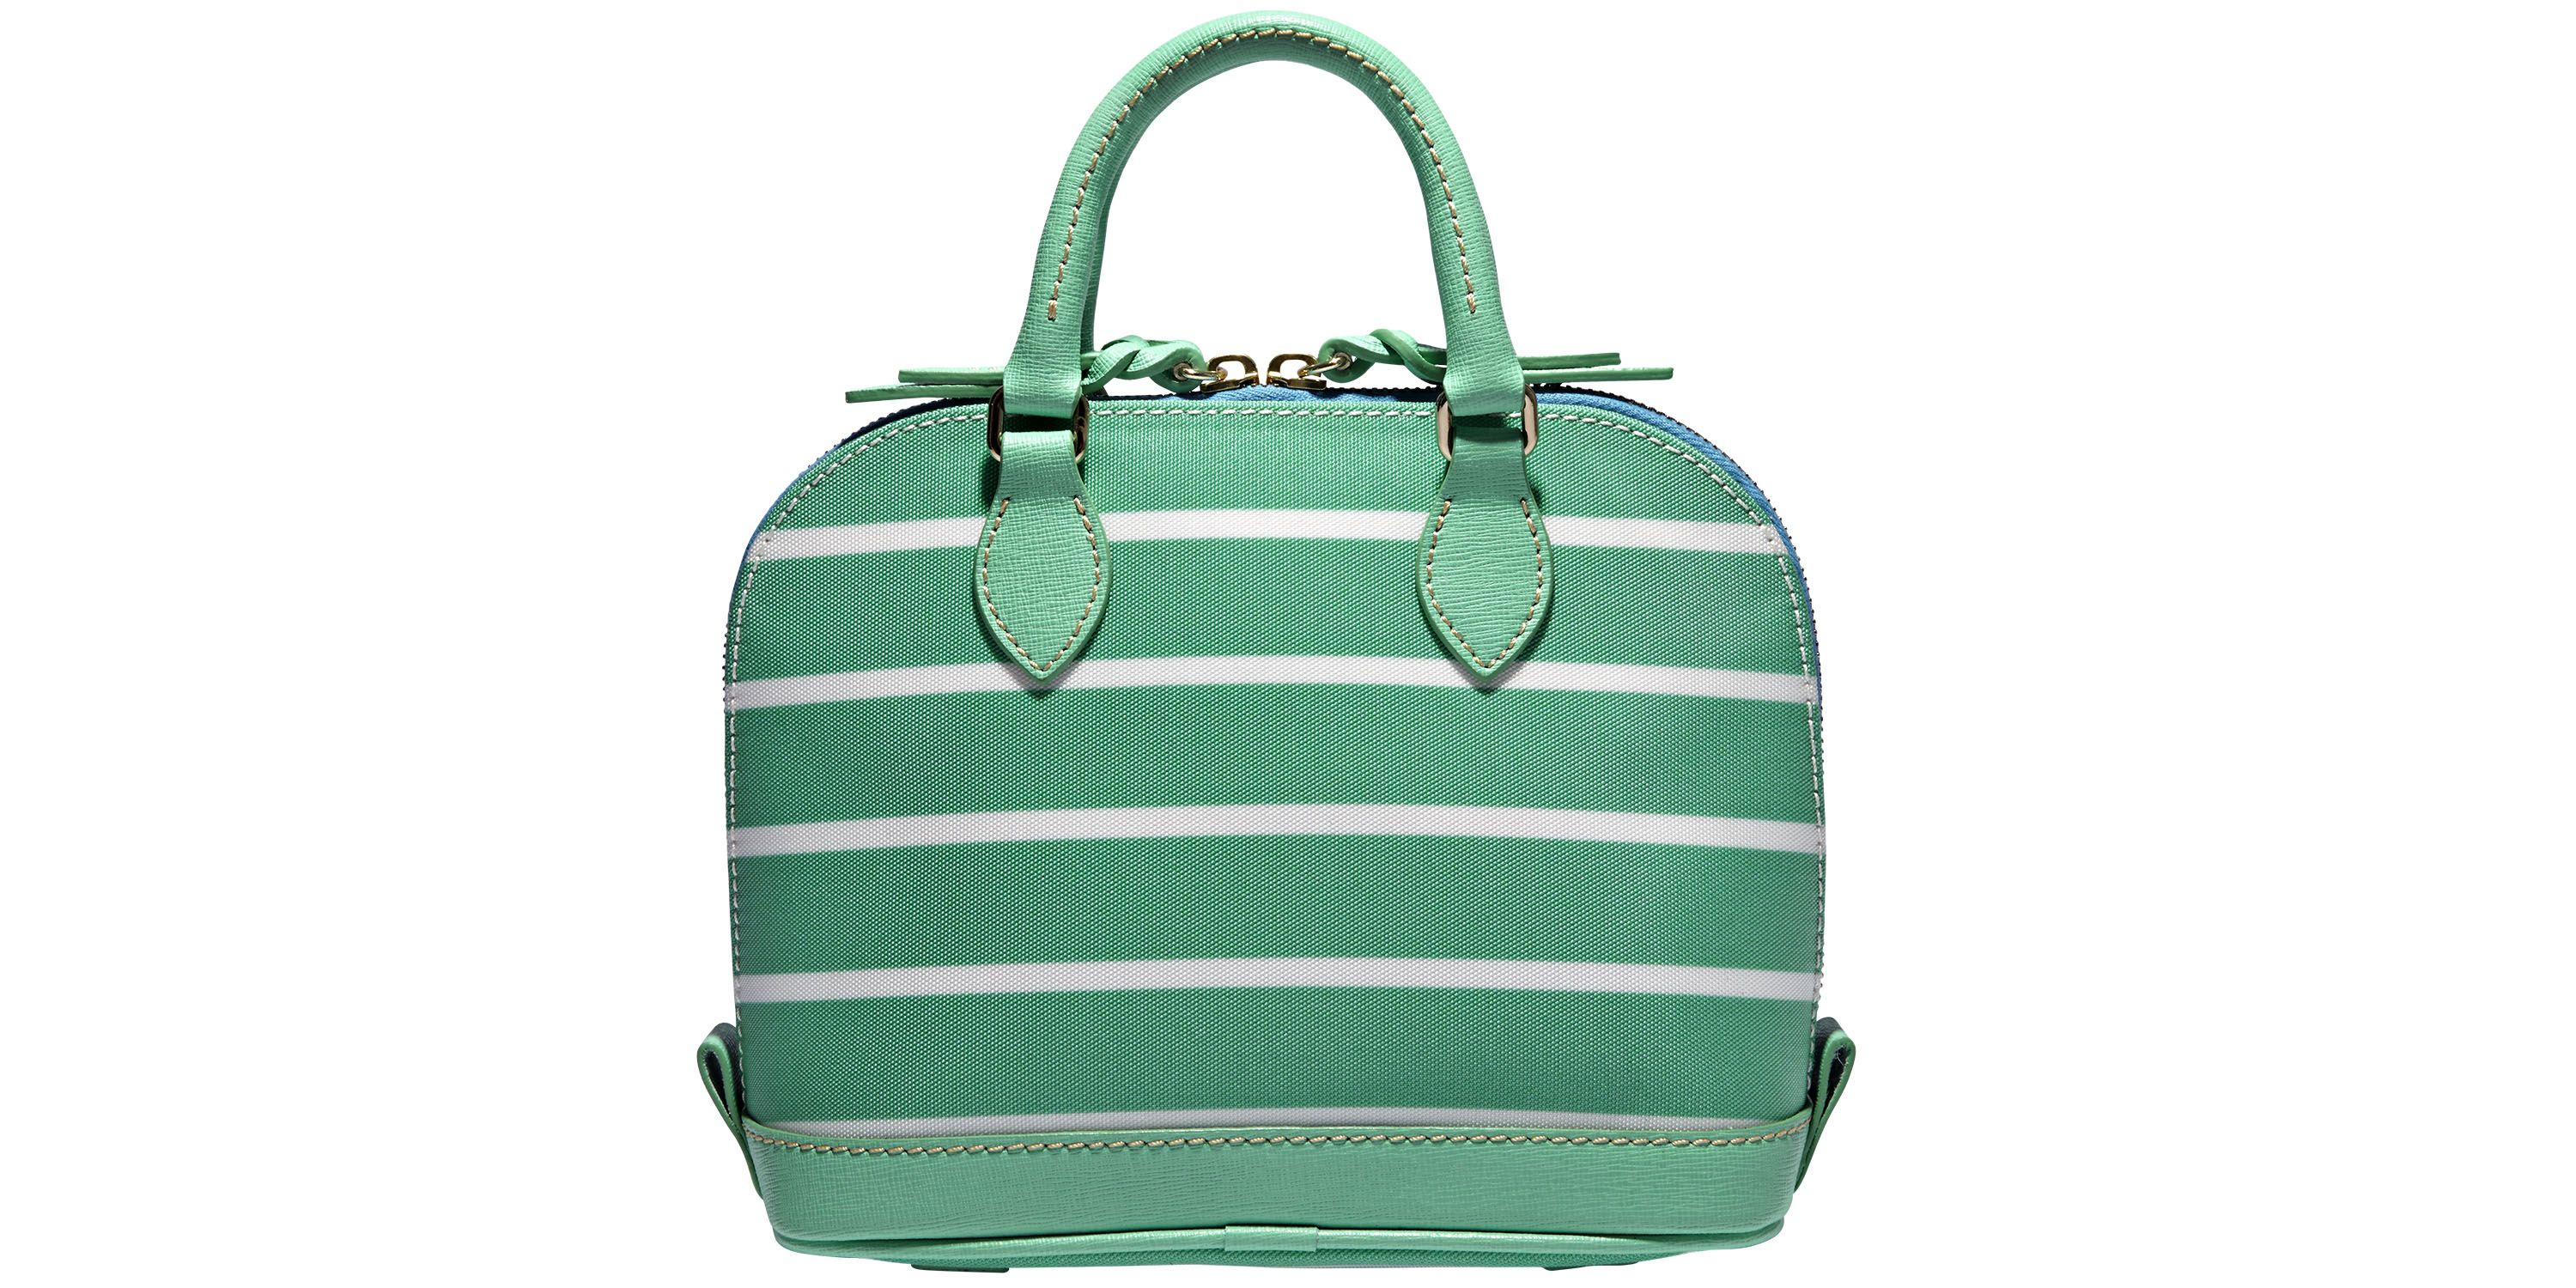 "<p><strong>Dooney& Bourke </strong>bag, $178, <a href=""http://dooney.com"" target=""_blank"">dooney.com</a>. </p>"